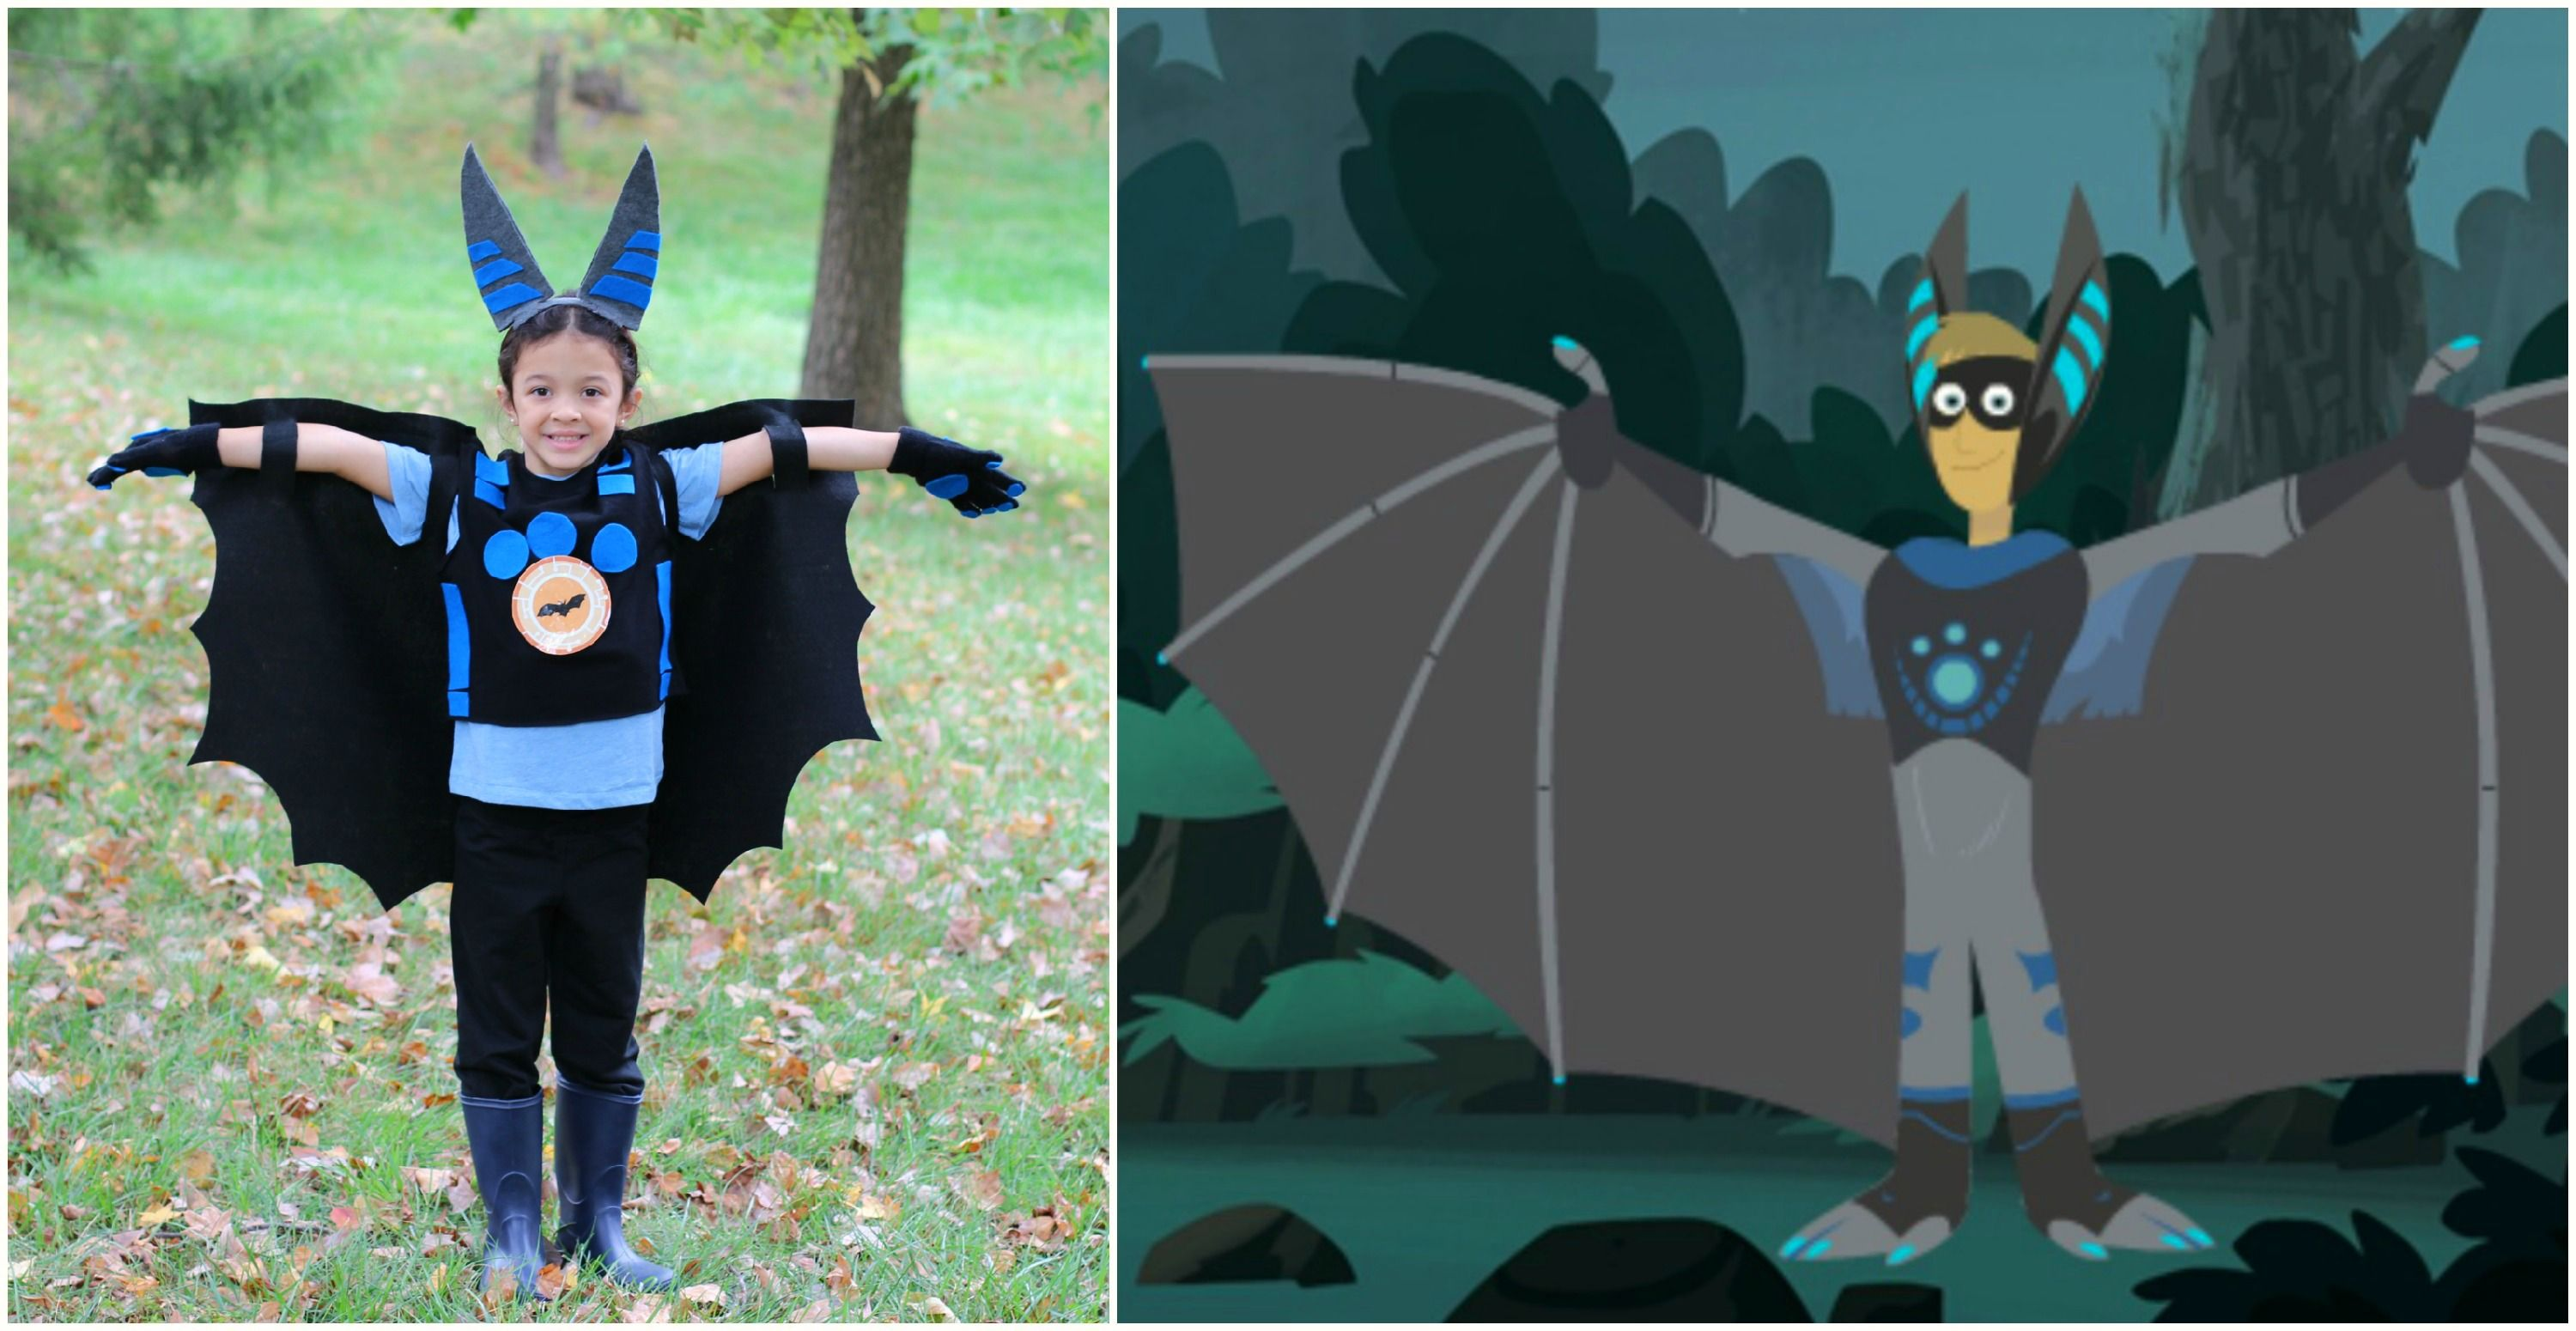 No Sew Wild Kratts Bat Costume Your Child Will Go Batty Over This Awesome Halloween Costume With Images Wild Kratts Costume Kids Costumes Diy Costumes Kids